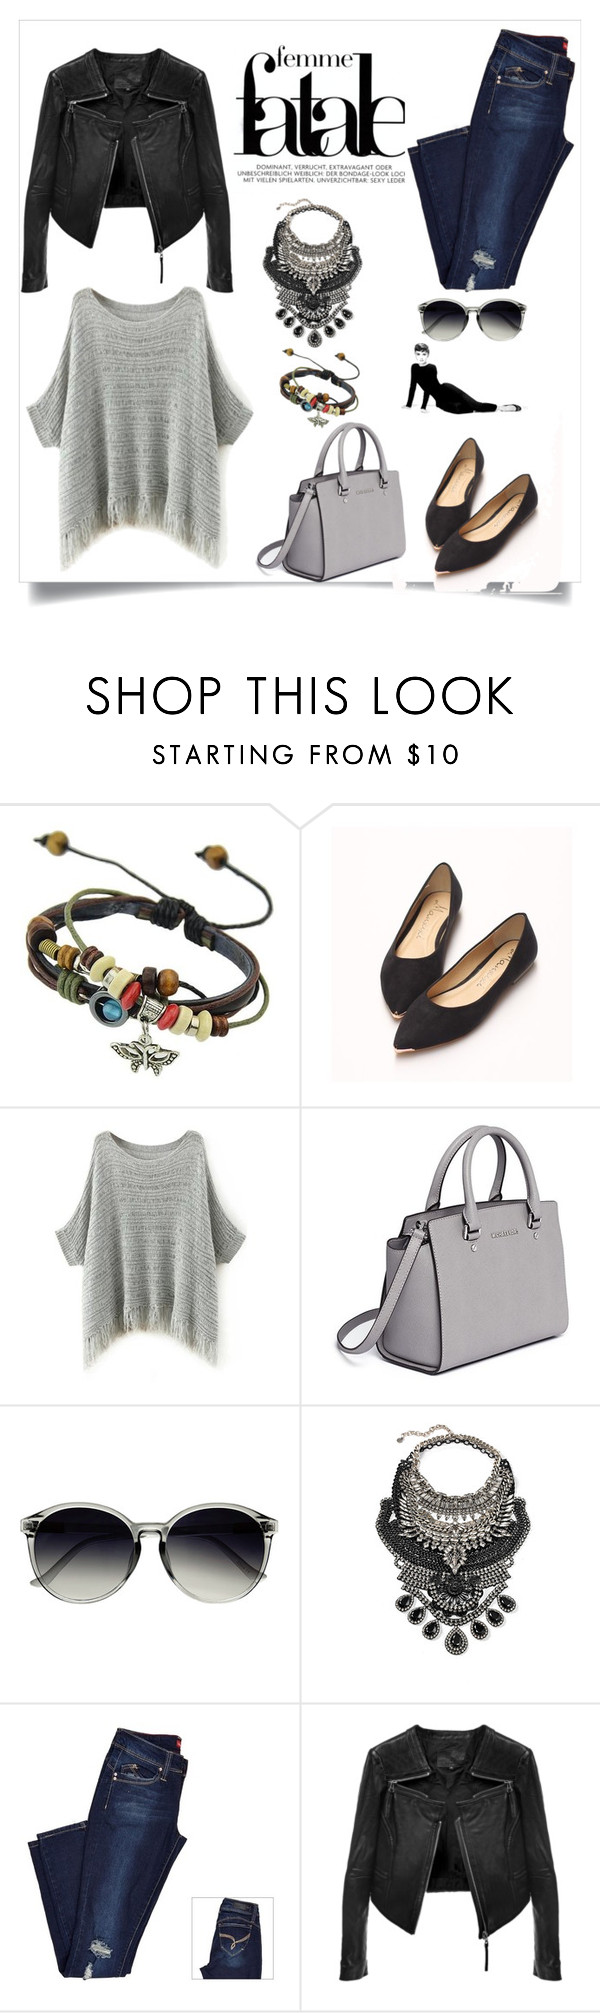 """""""favorite outfit"""" by my-fashion-paradise ❤ liked on Polyvore featuring MICHAEL Michael Kors, Retrò, DYLANLEX and Linea Pelle"""